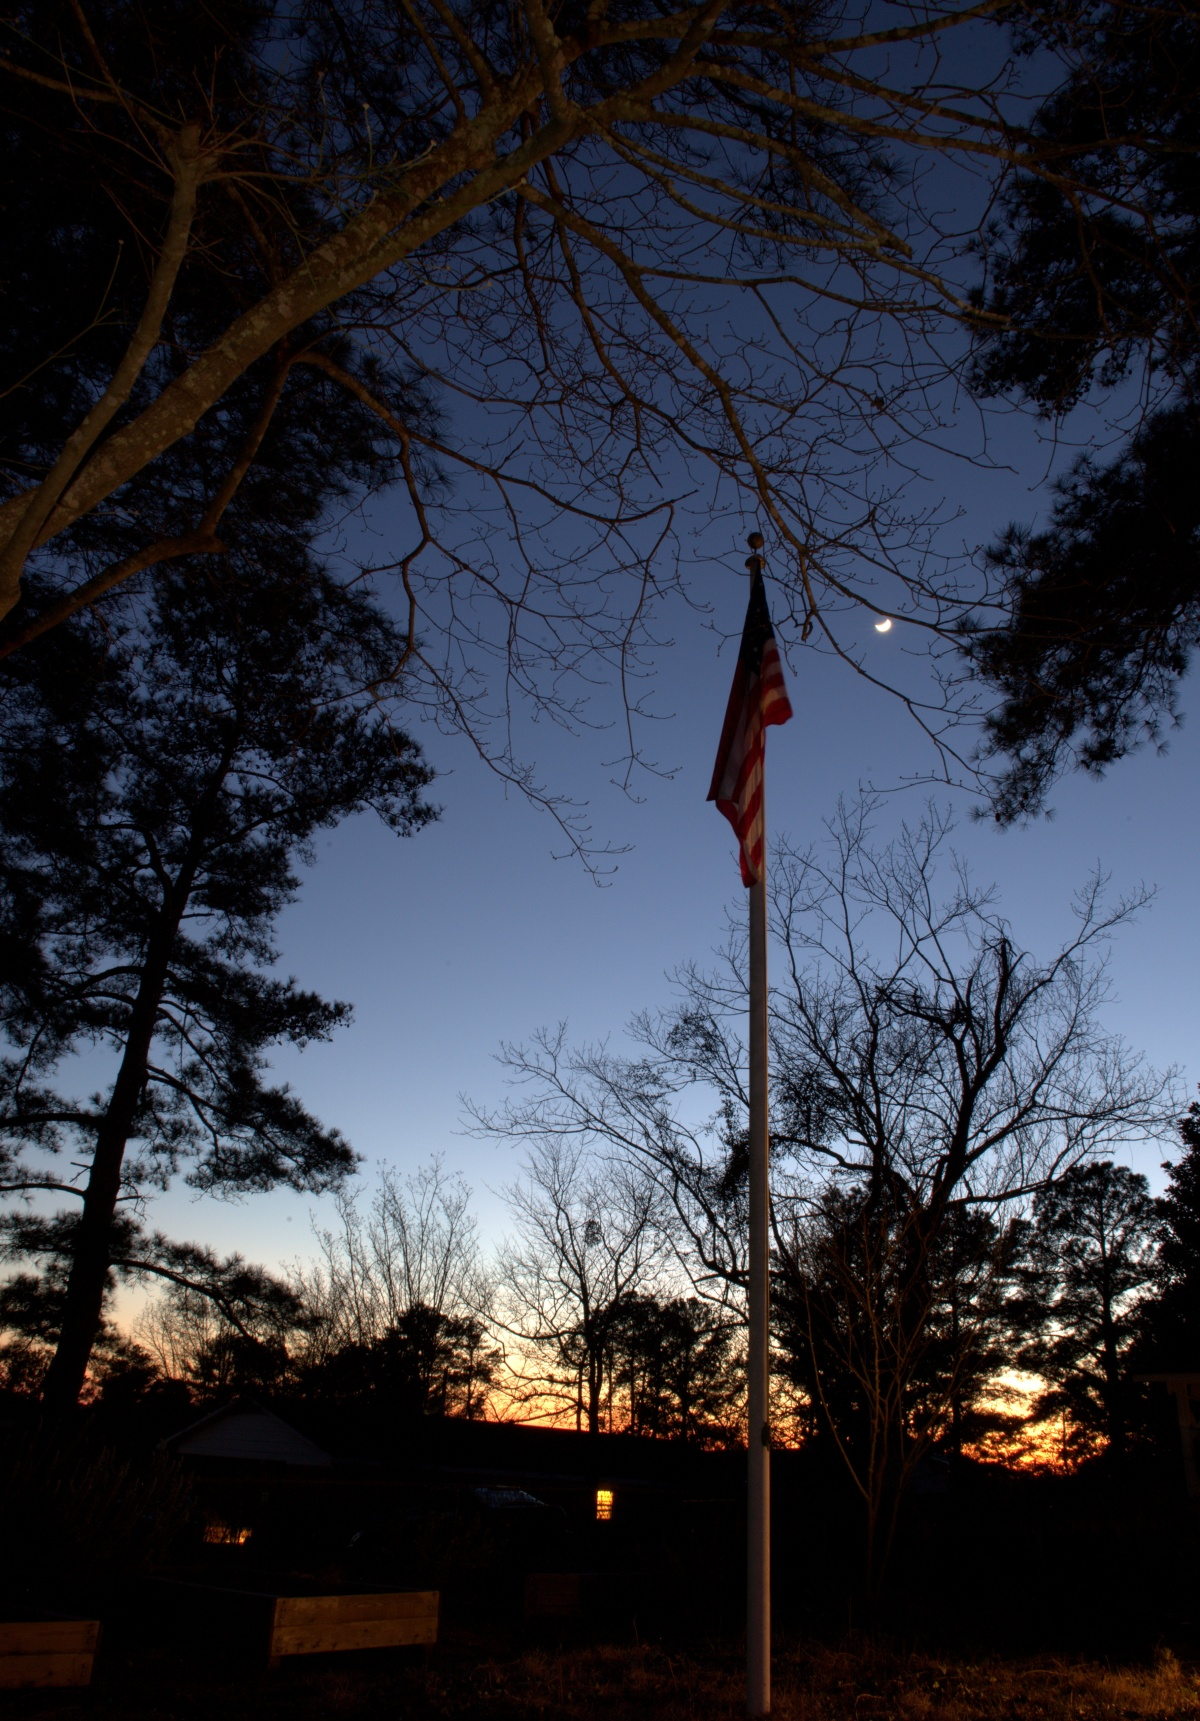 Photography ~ Evening, with the moon in the sky,02/11